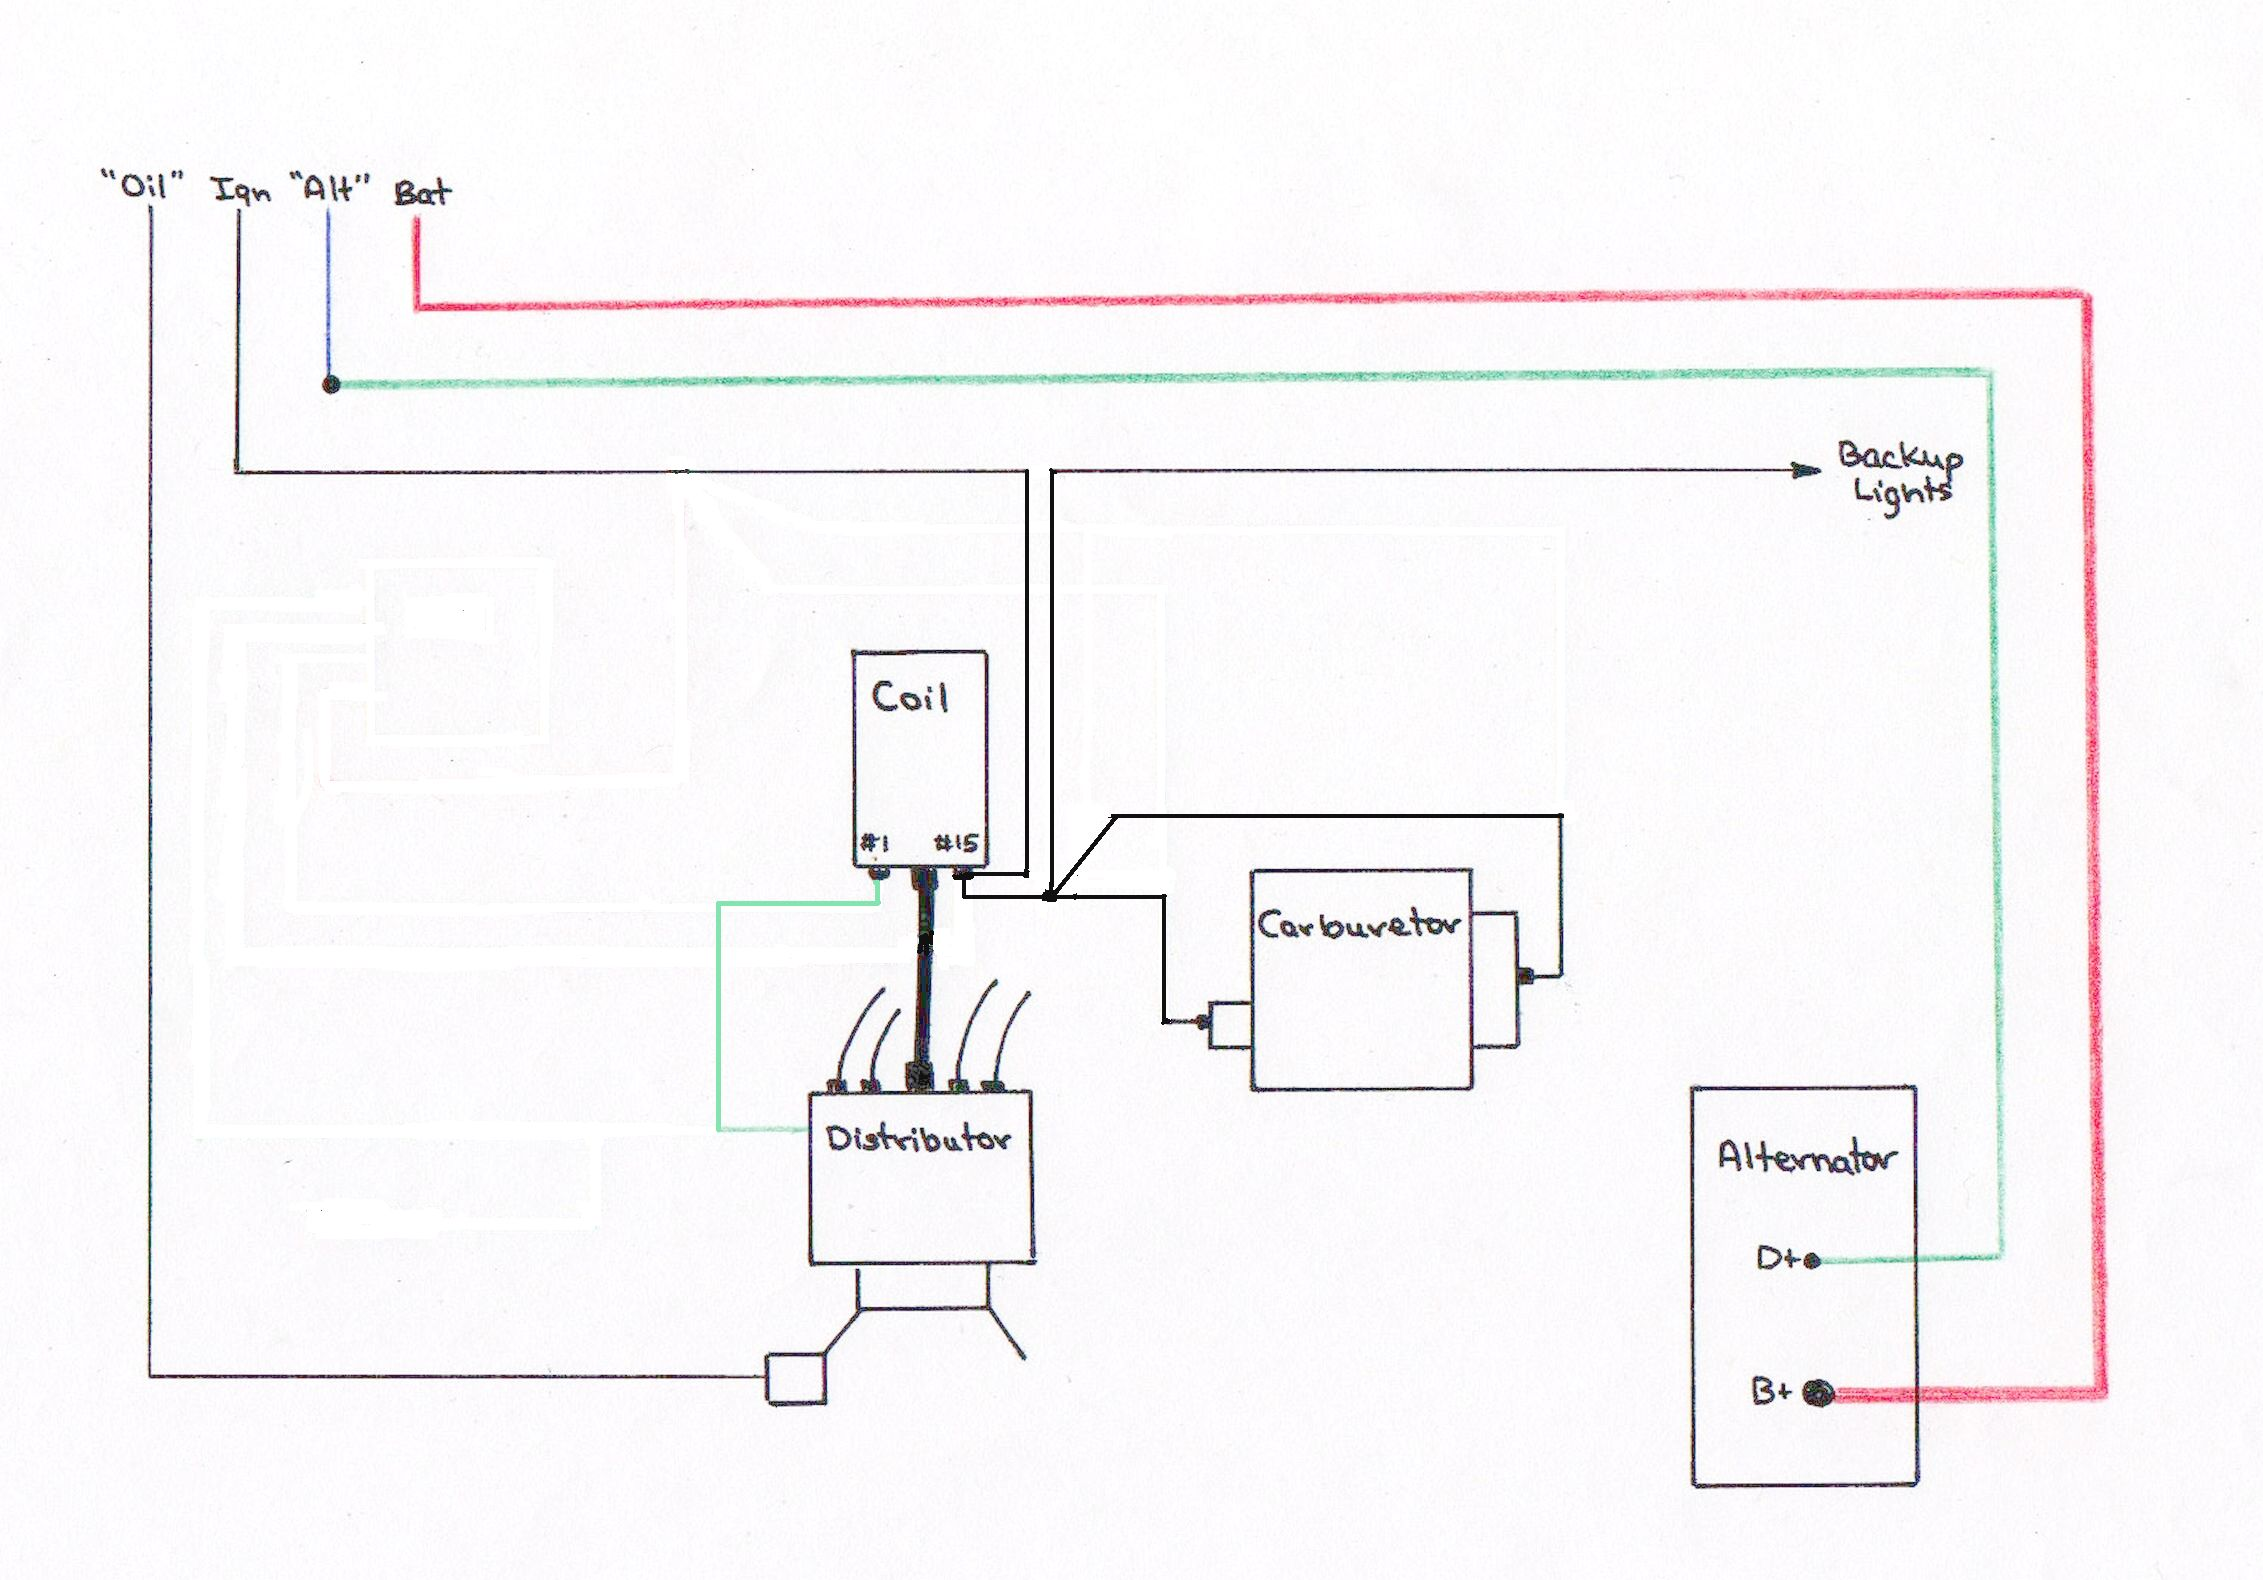 handdrawn_schematic alternator wiring vw generator to alternator conversion wiring diagram at nearapp.co